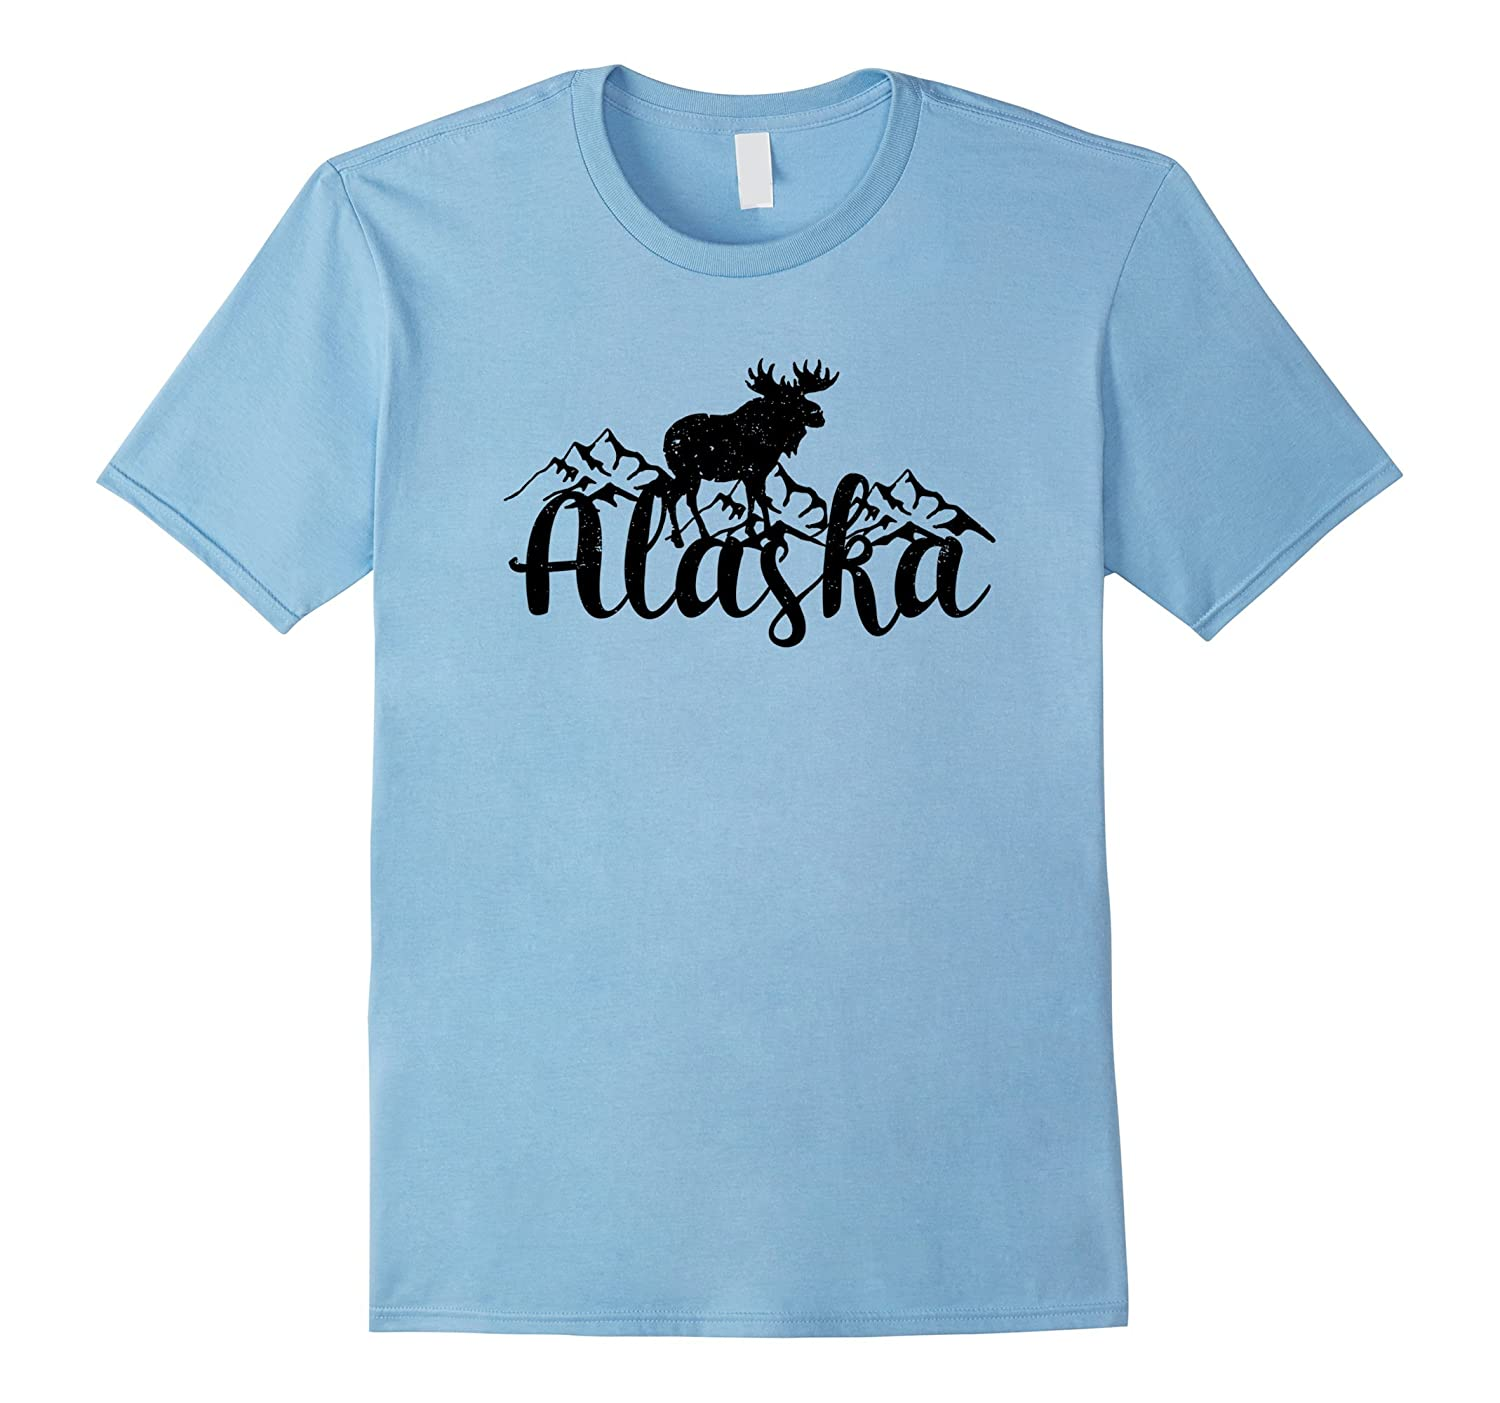 Alaska Wilderness T-Shirt with Moose and Mountains Design-ANZ